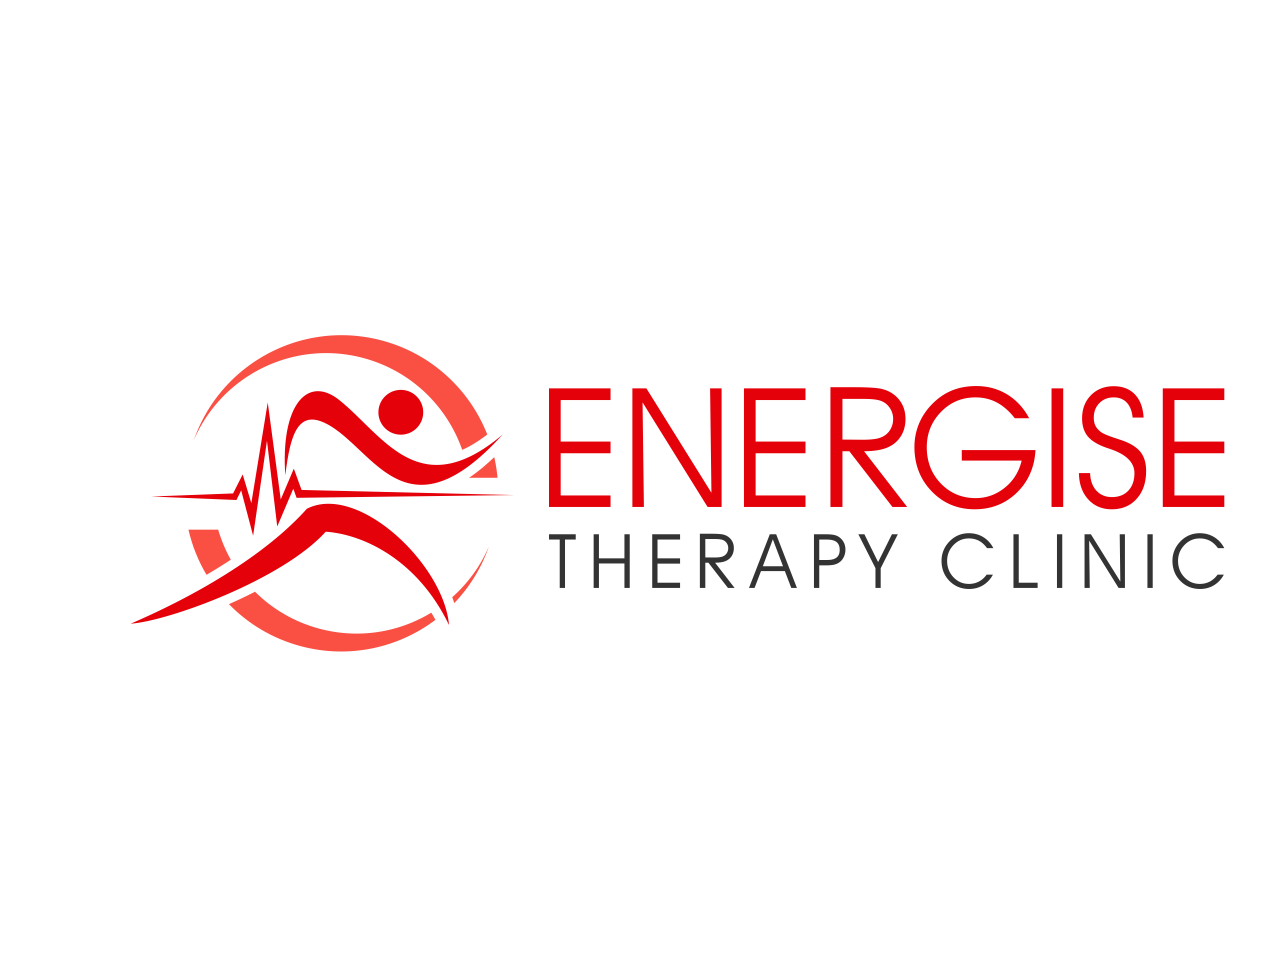 Energise Therapy Clinic - Physiotherapy Acupuncture and Massage